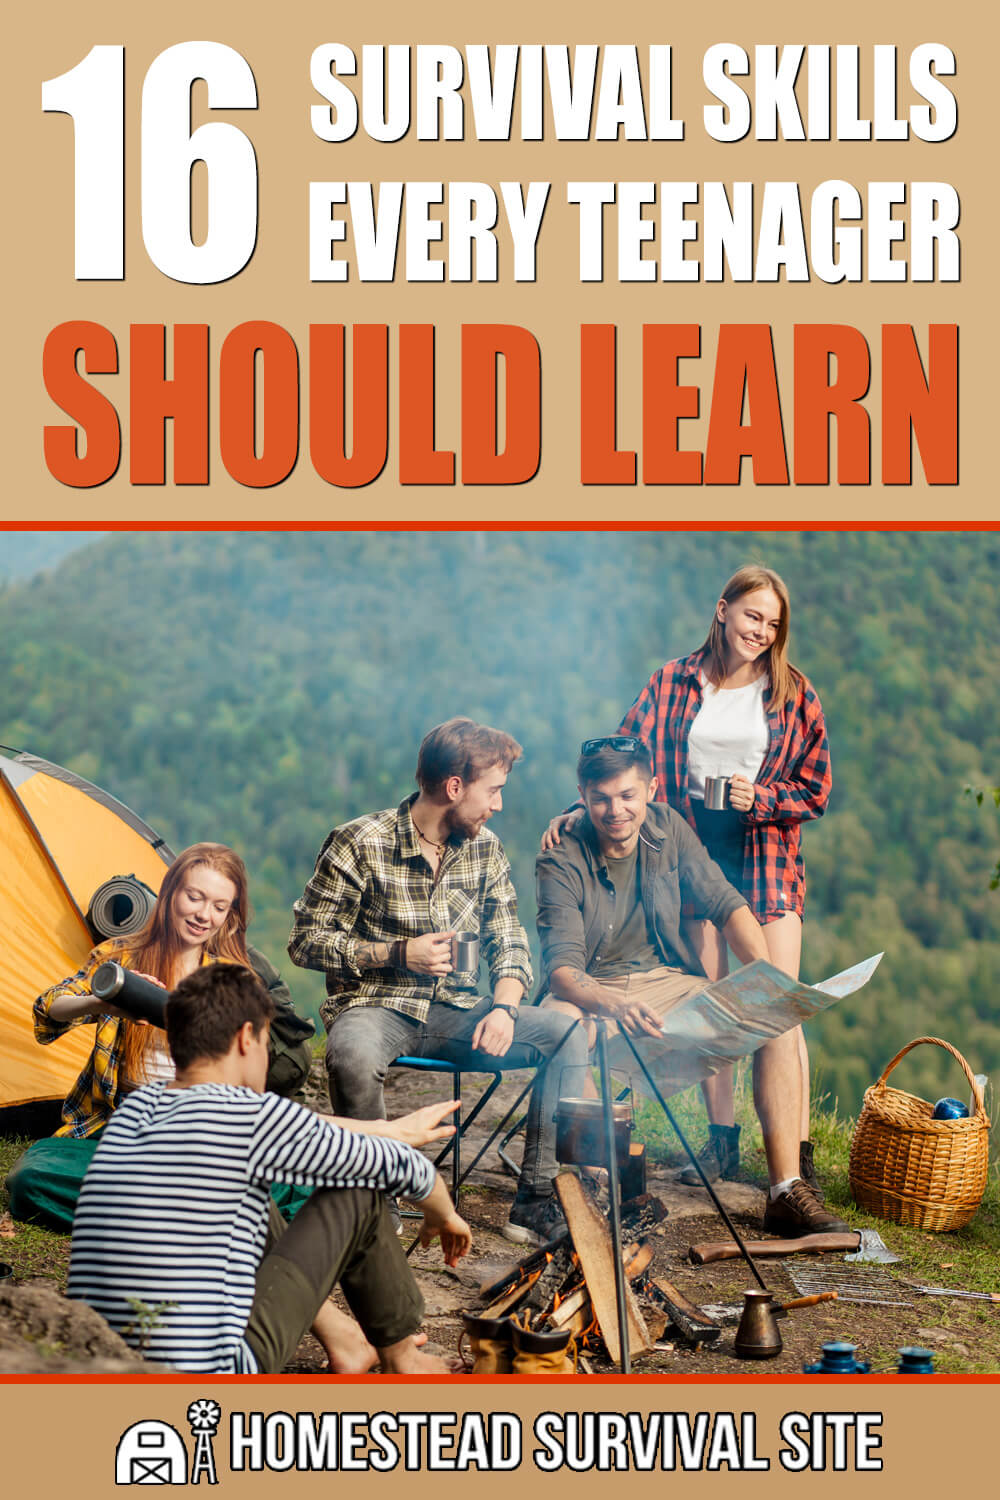 16 Survival Skills Every Teenager Should Learn